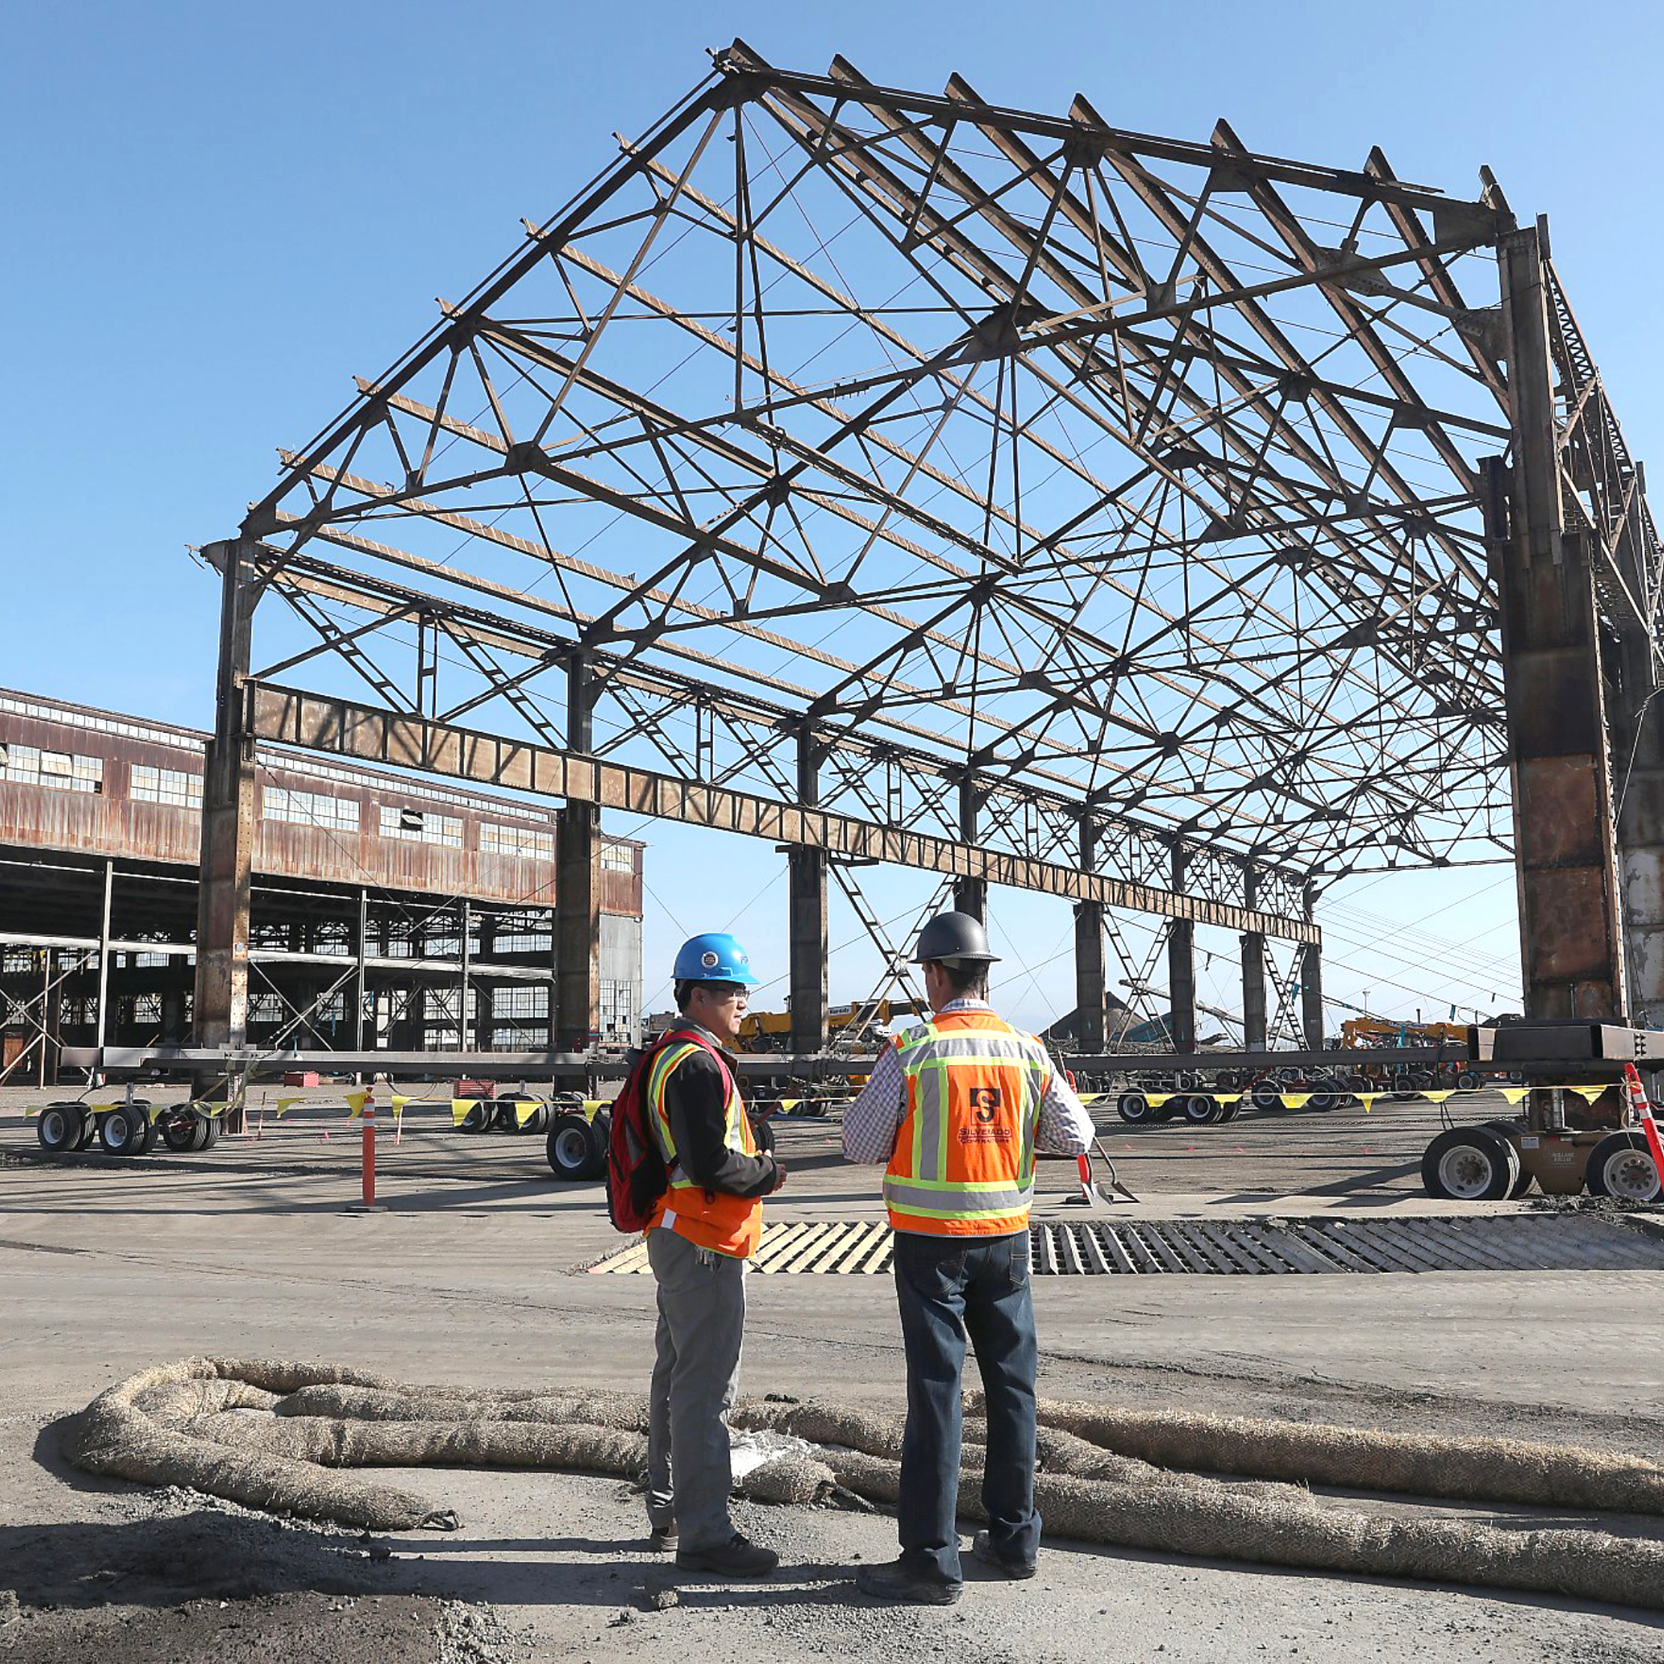 Building 15 on the move - October 24, 2018Building 15 gets temporarily moved to begin transforming 22nd street. The structure will be returned to mark the gateway at Pier 70.